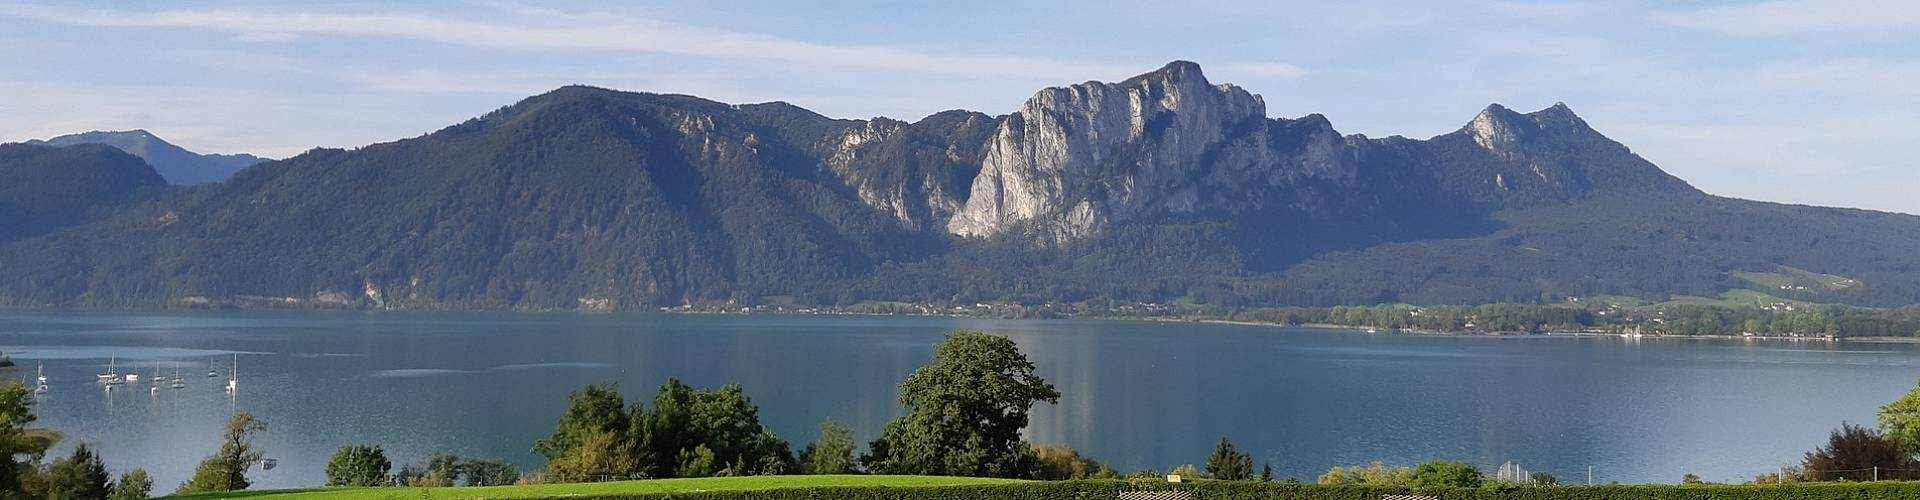 Immobilien - RE/MAX ImmoCenter in Mondsee